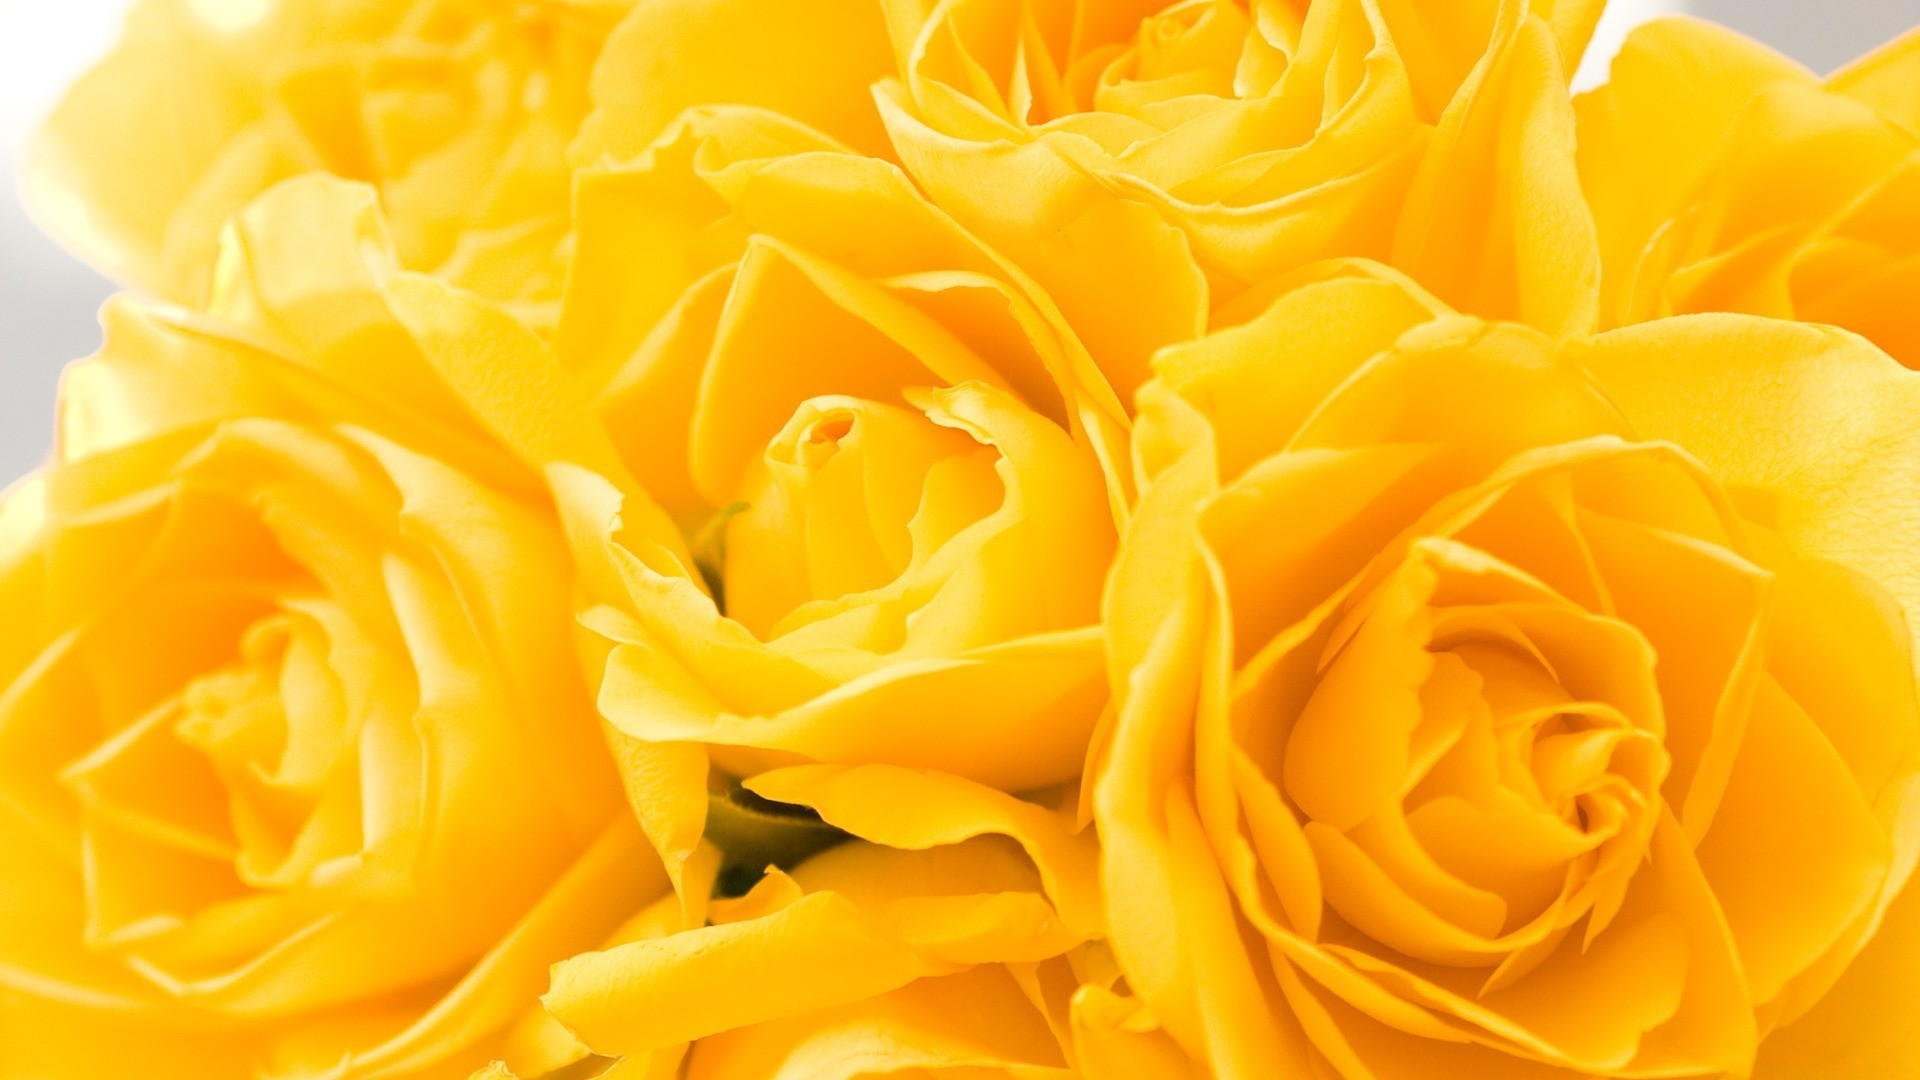 Yellow Flower Background Wallpaper